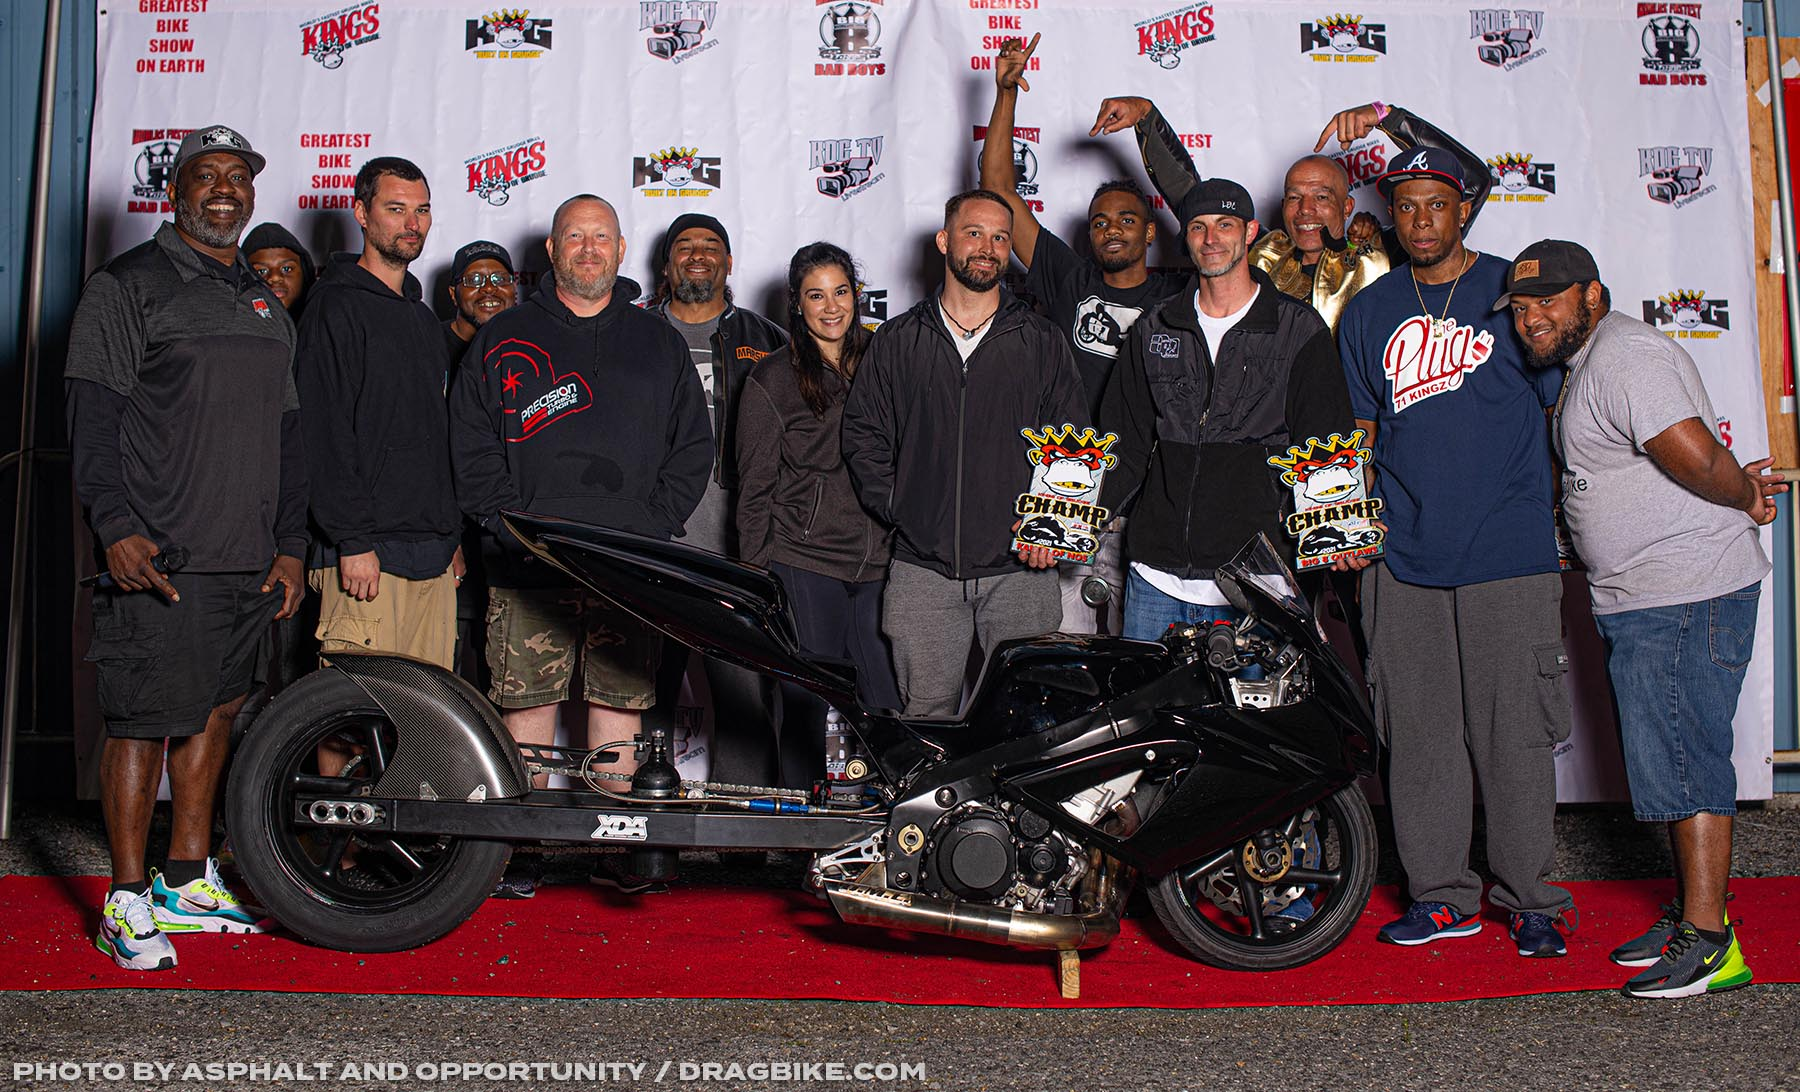 Winner - Kings of NOS and Big 8 Outlaws